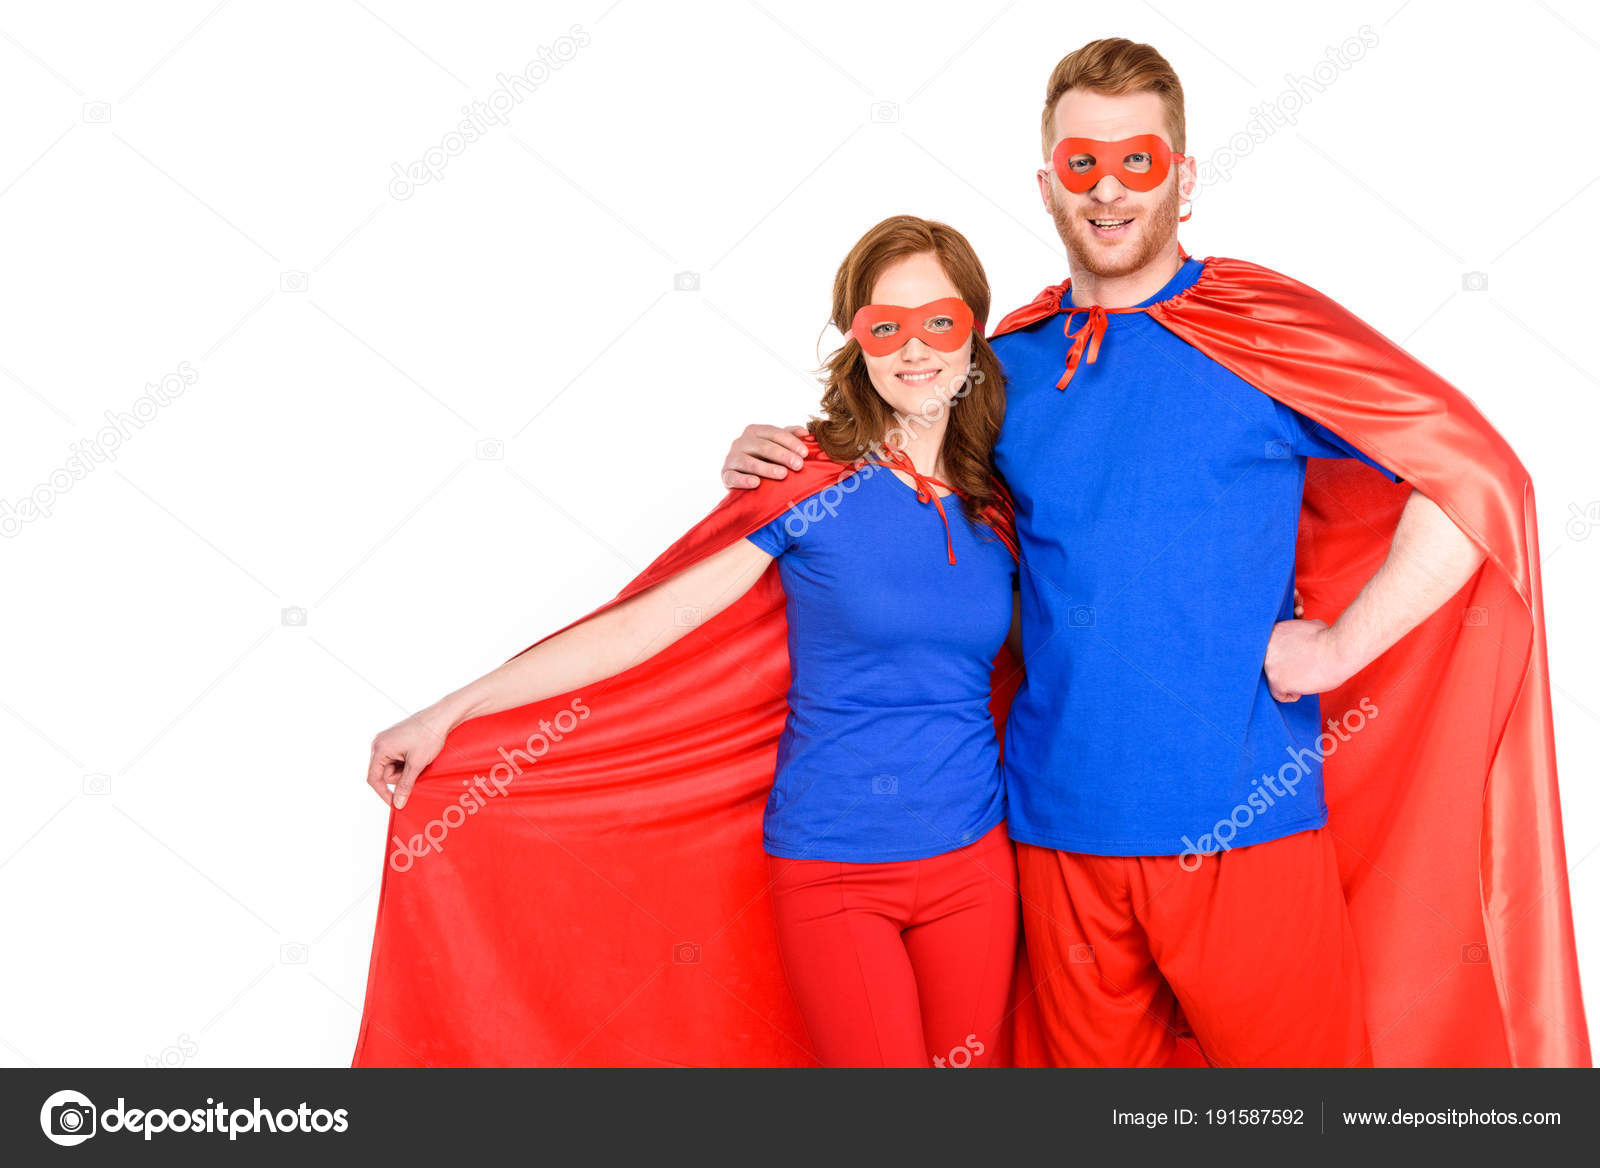 happy couple superheroes standing together smiling camera isolated